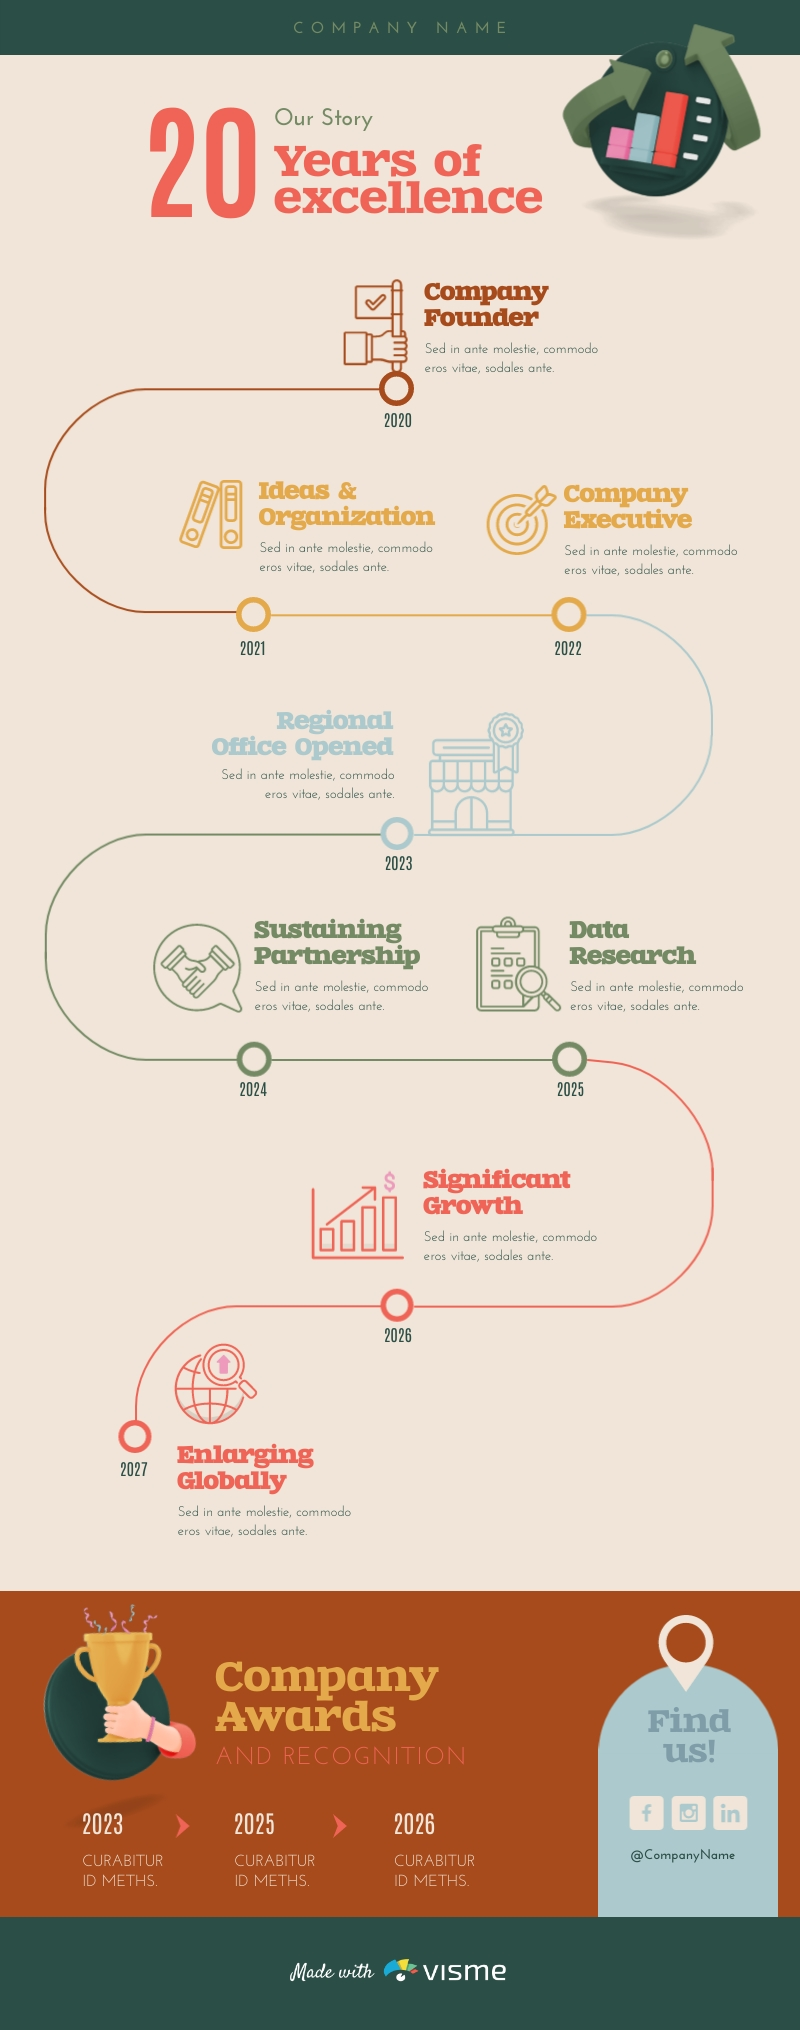 Company Journey Timeline - Infographic Template